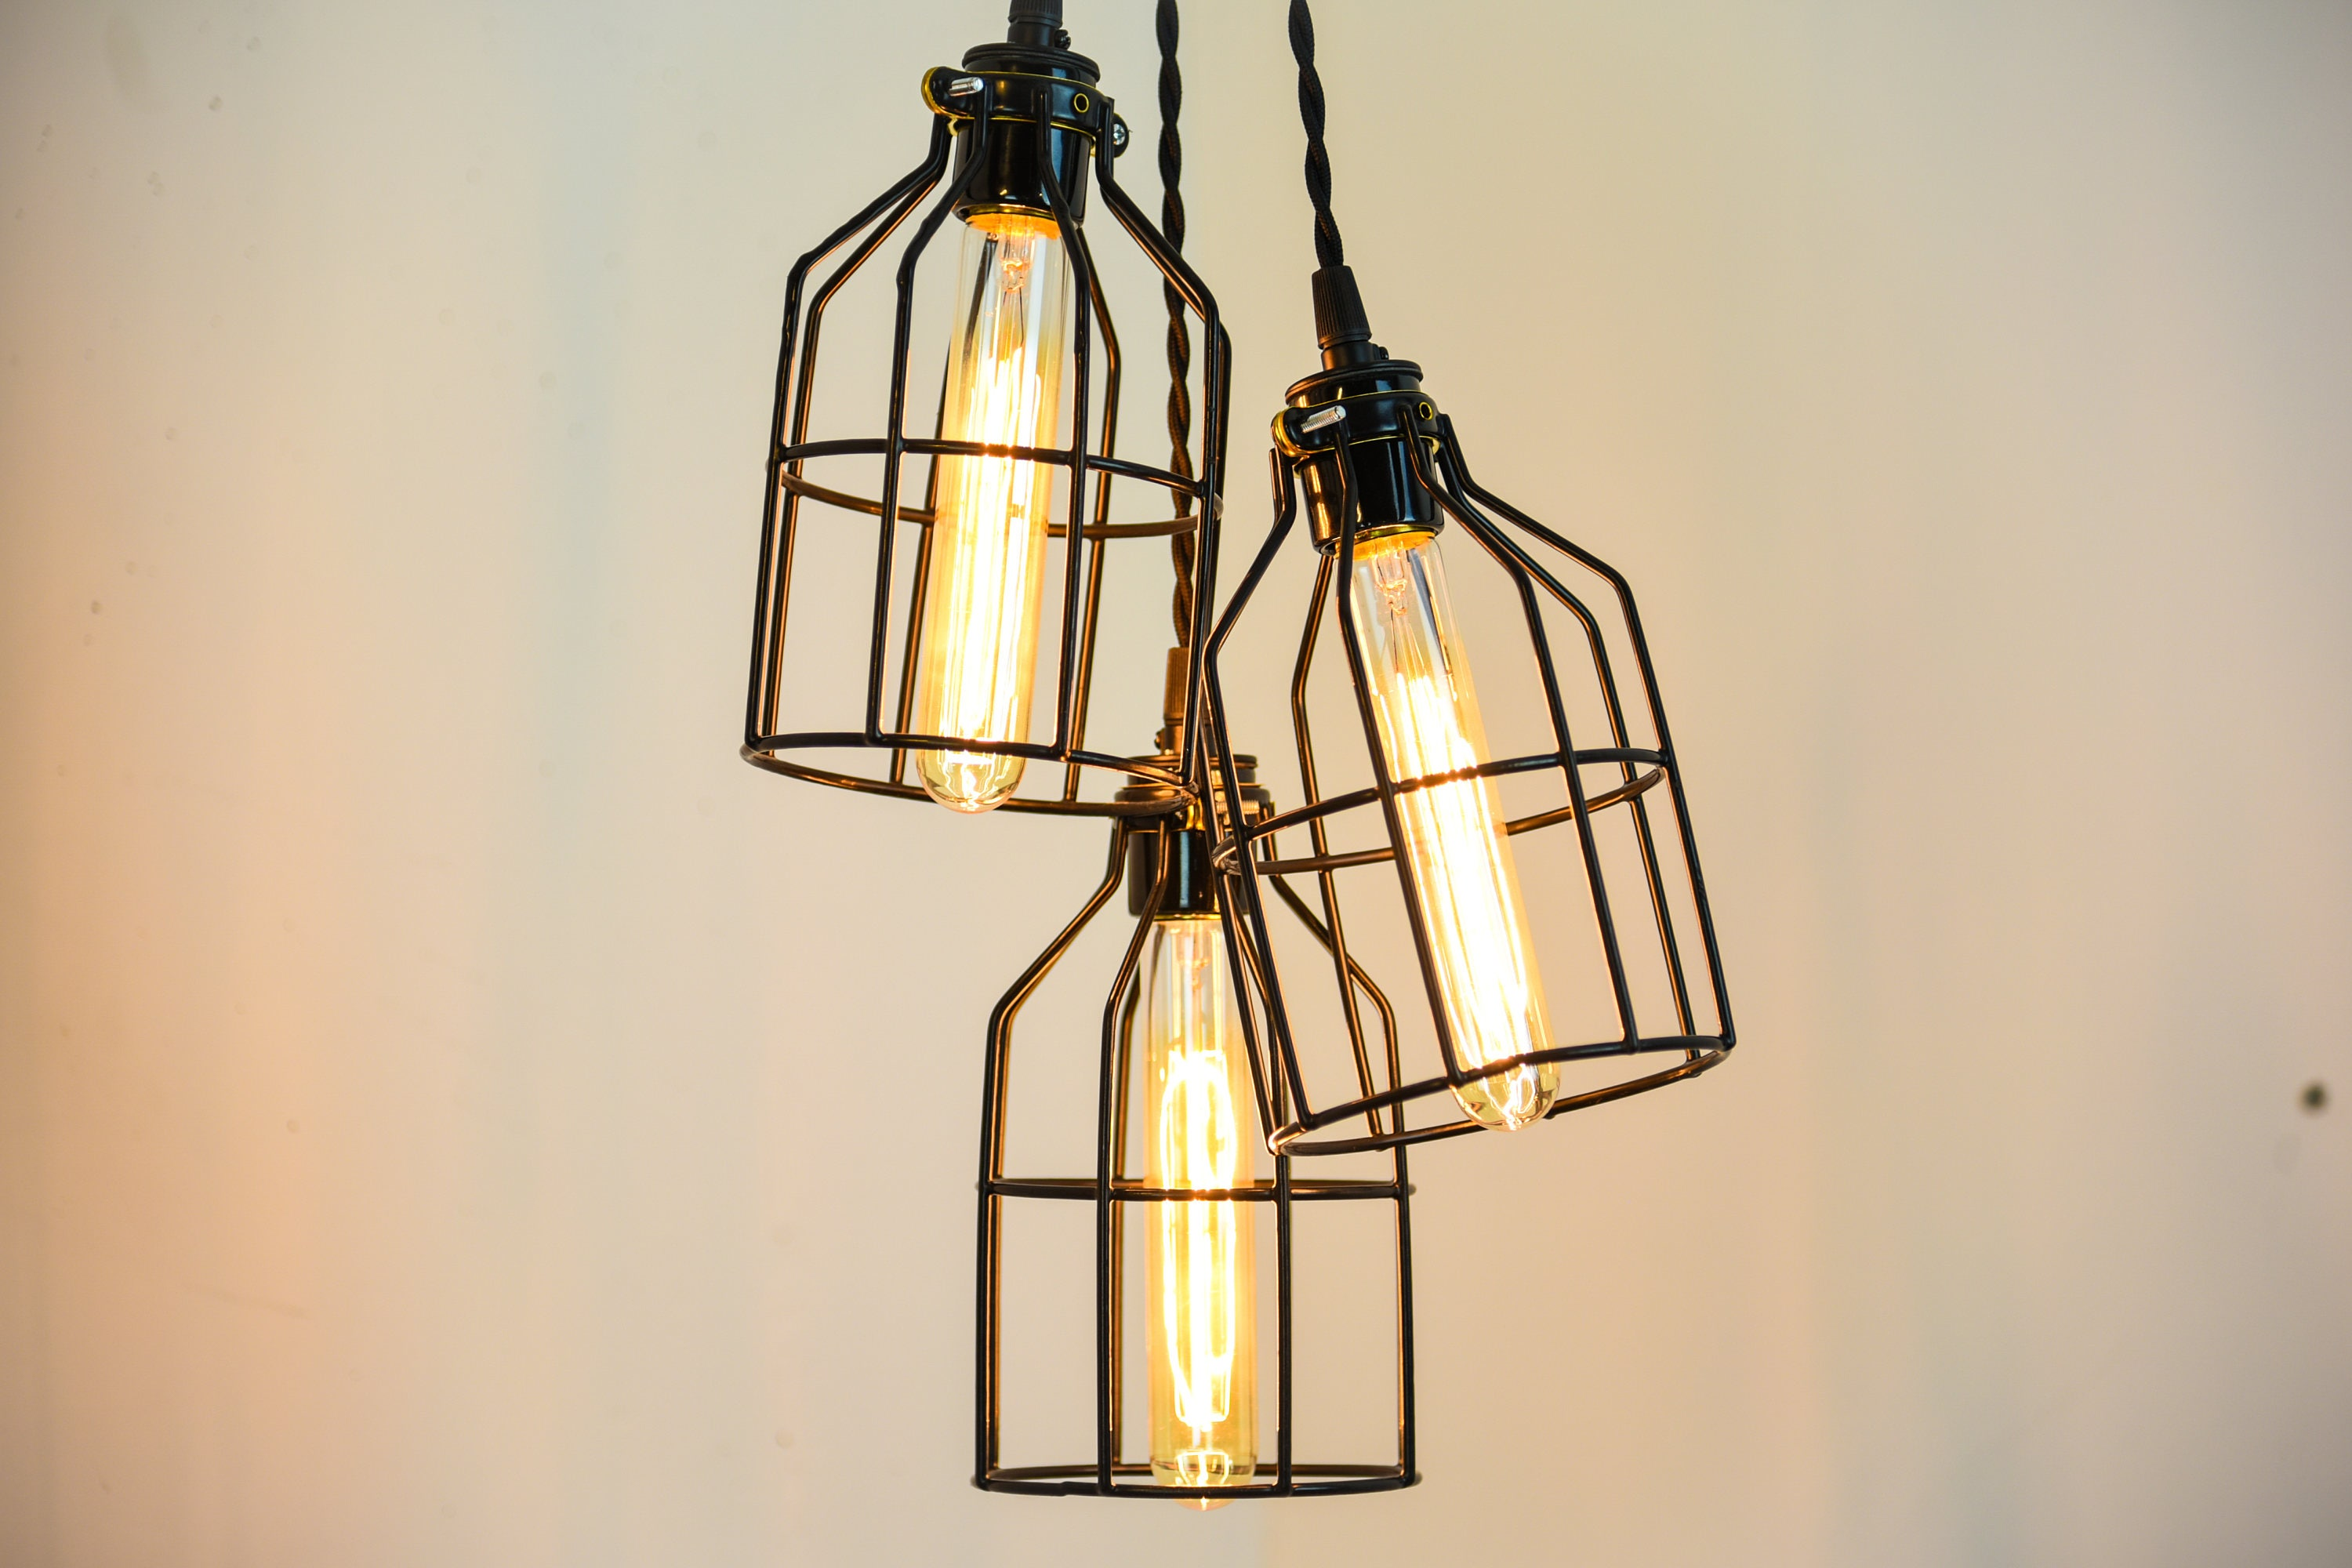 edison il fullxfull rustic lamp light bulb pendant ceiling listing industrial lighting chandeliers lights cage